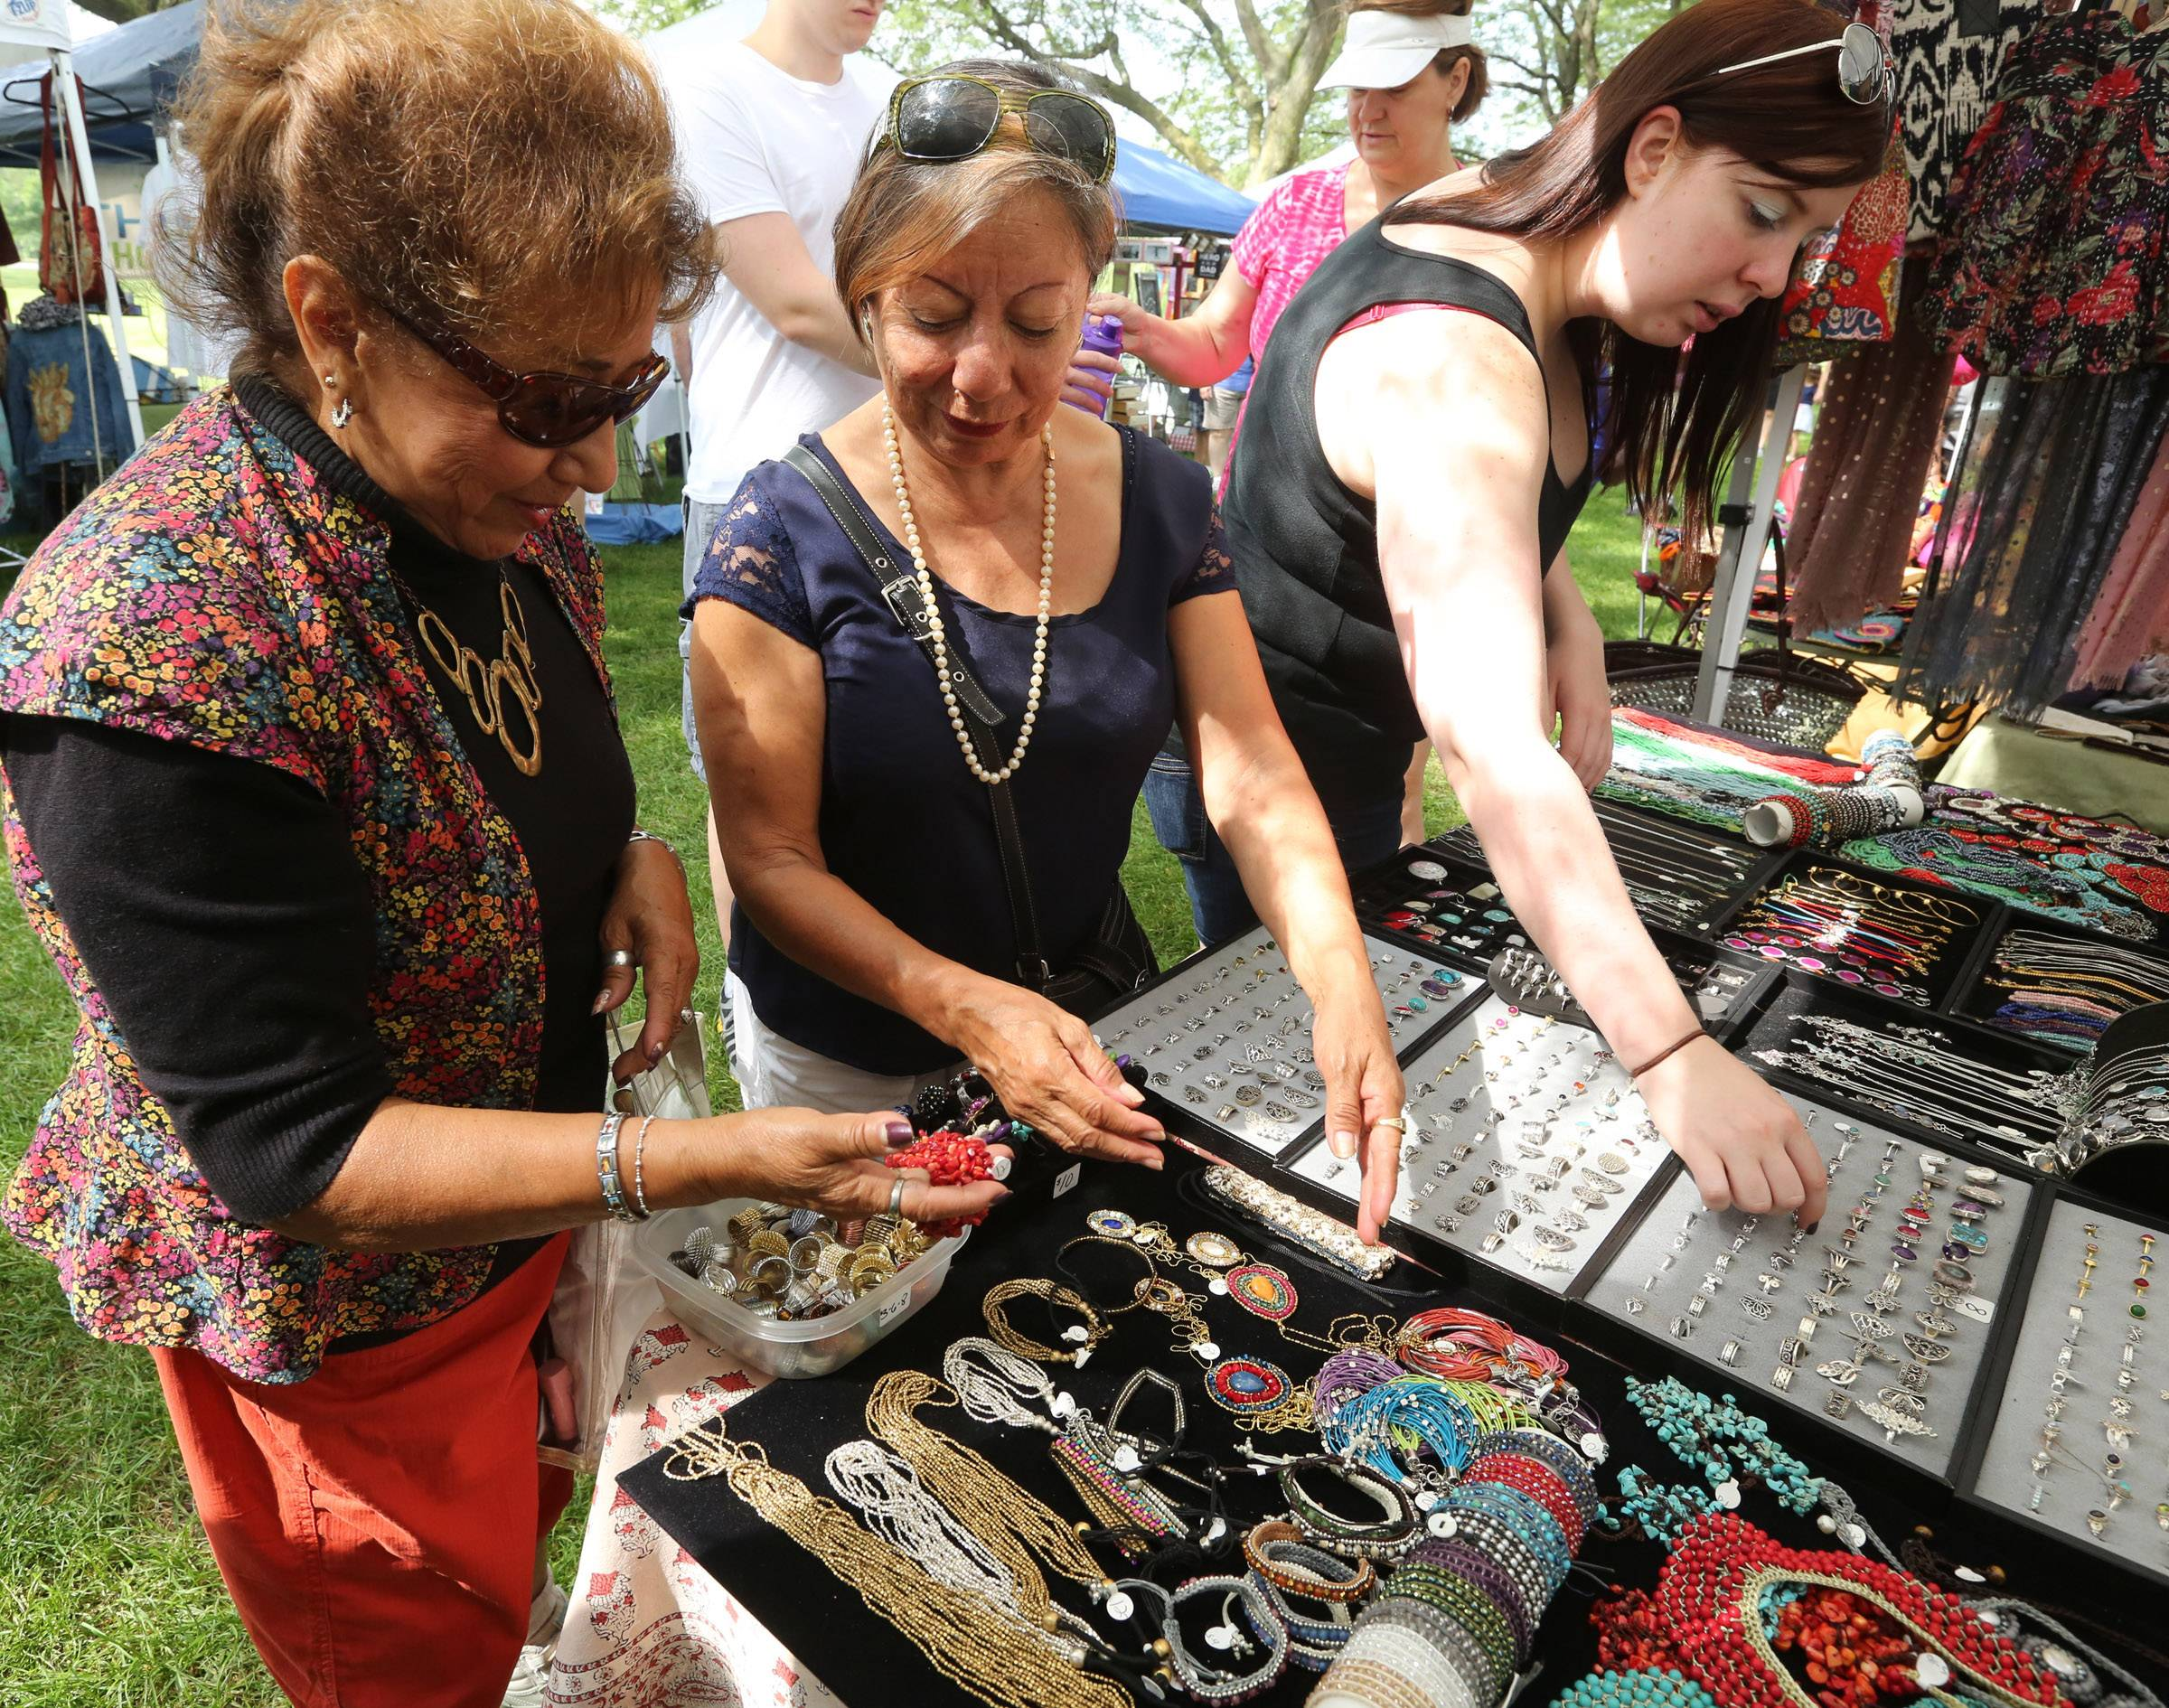 Rosa Castro, left, and Margarita Guerrero, both of Chicago, look at jewelry by Christine Mitchell during Sunday's French Connection Day celebration at Cantigny Park in Wheaton.